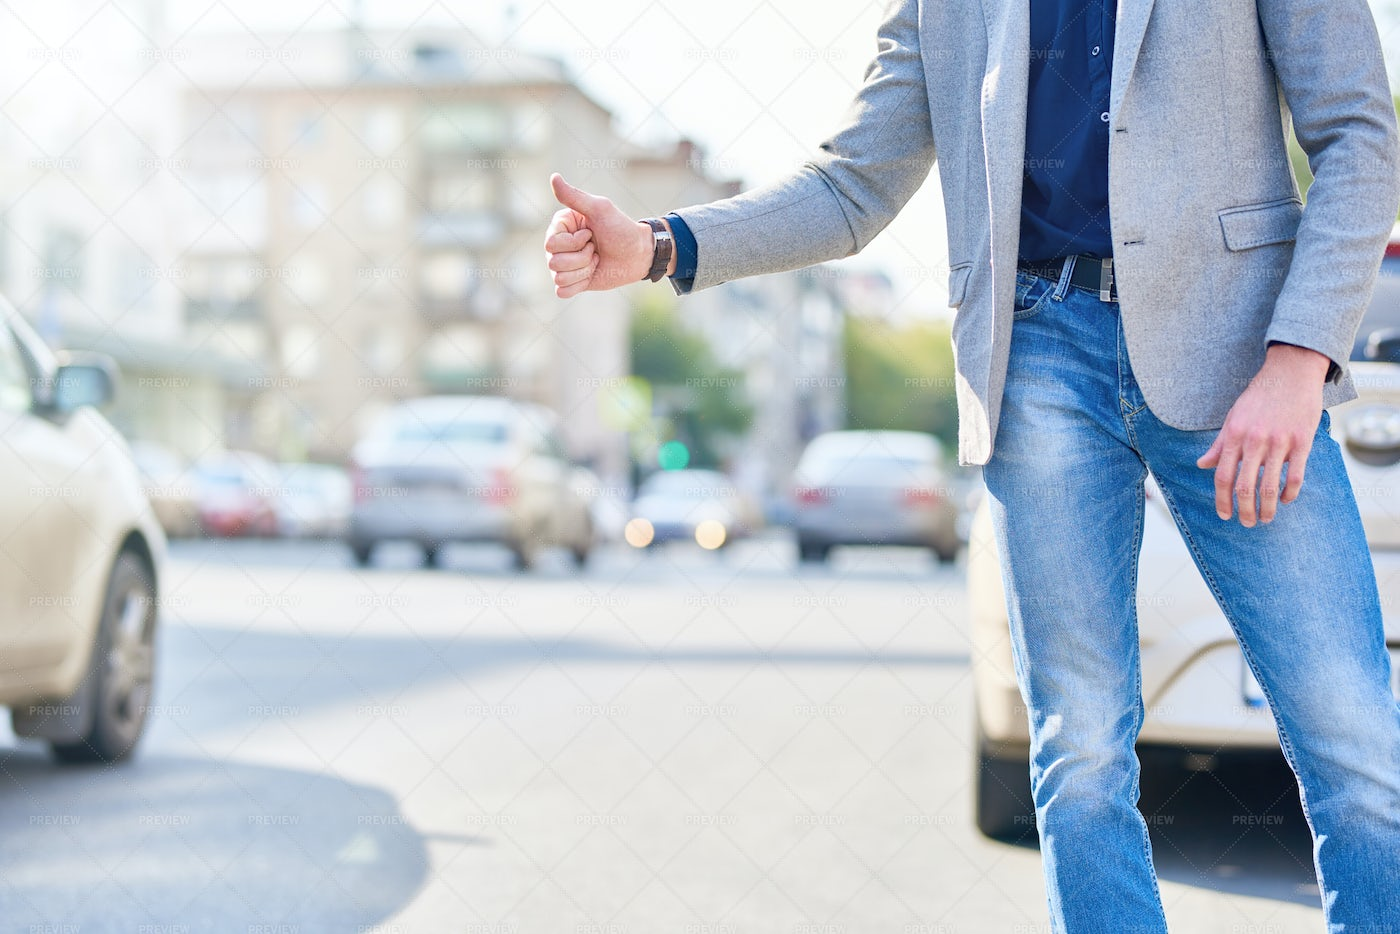 Unrecognizable Man Catching Taxi In...: Stock Photos